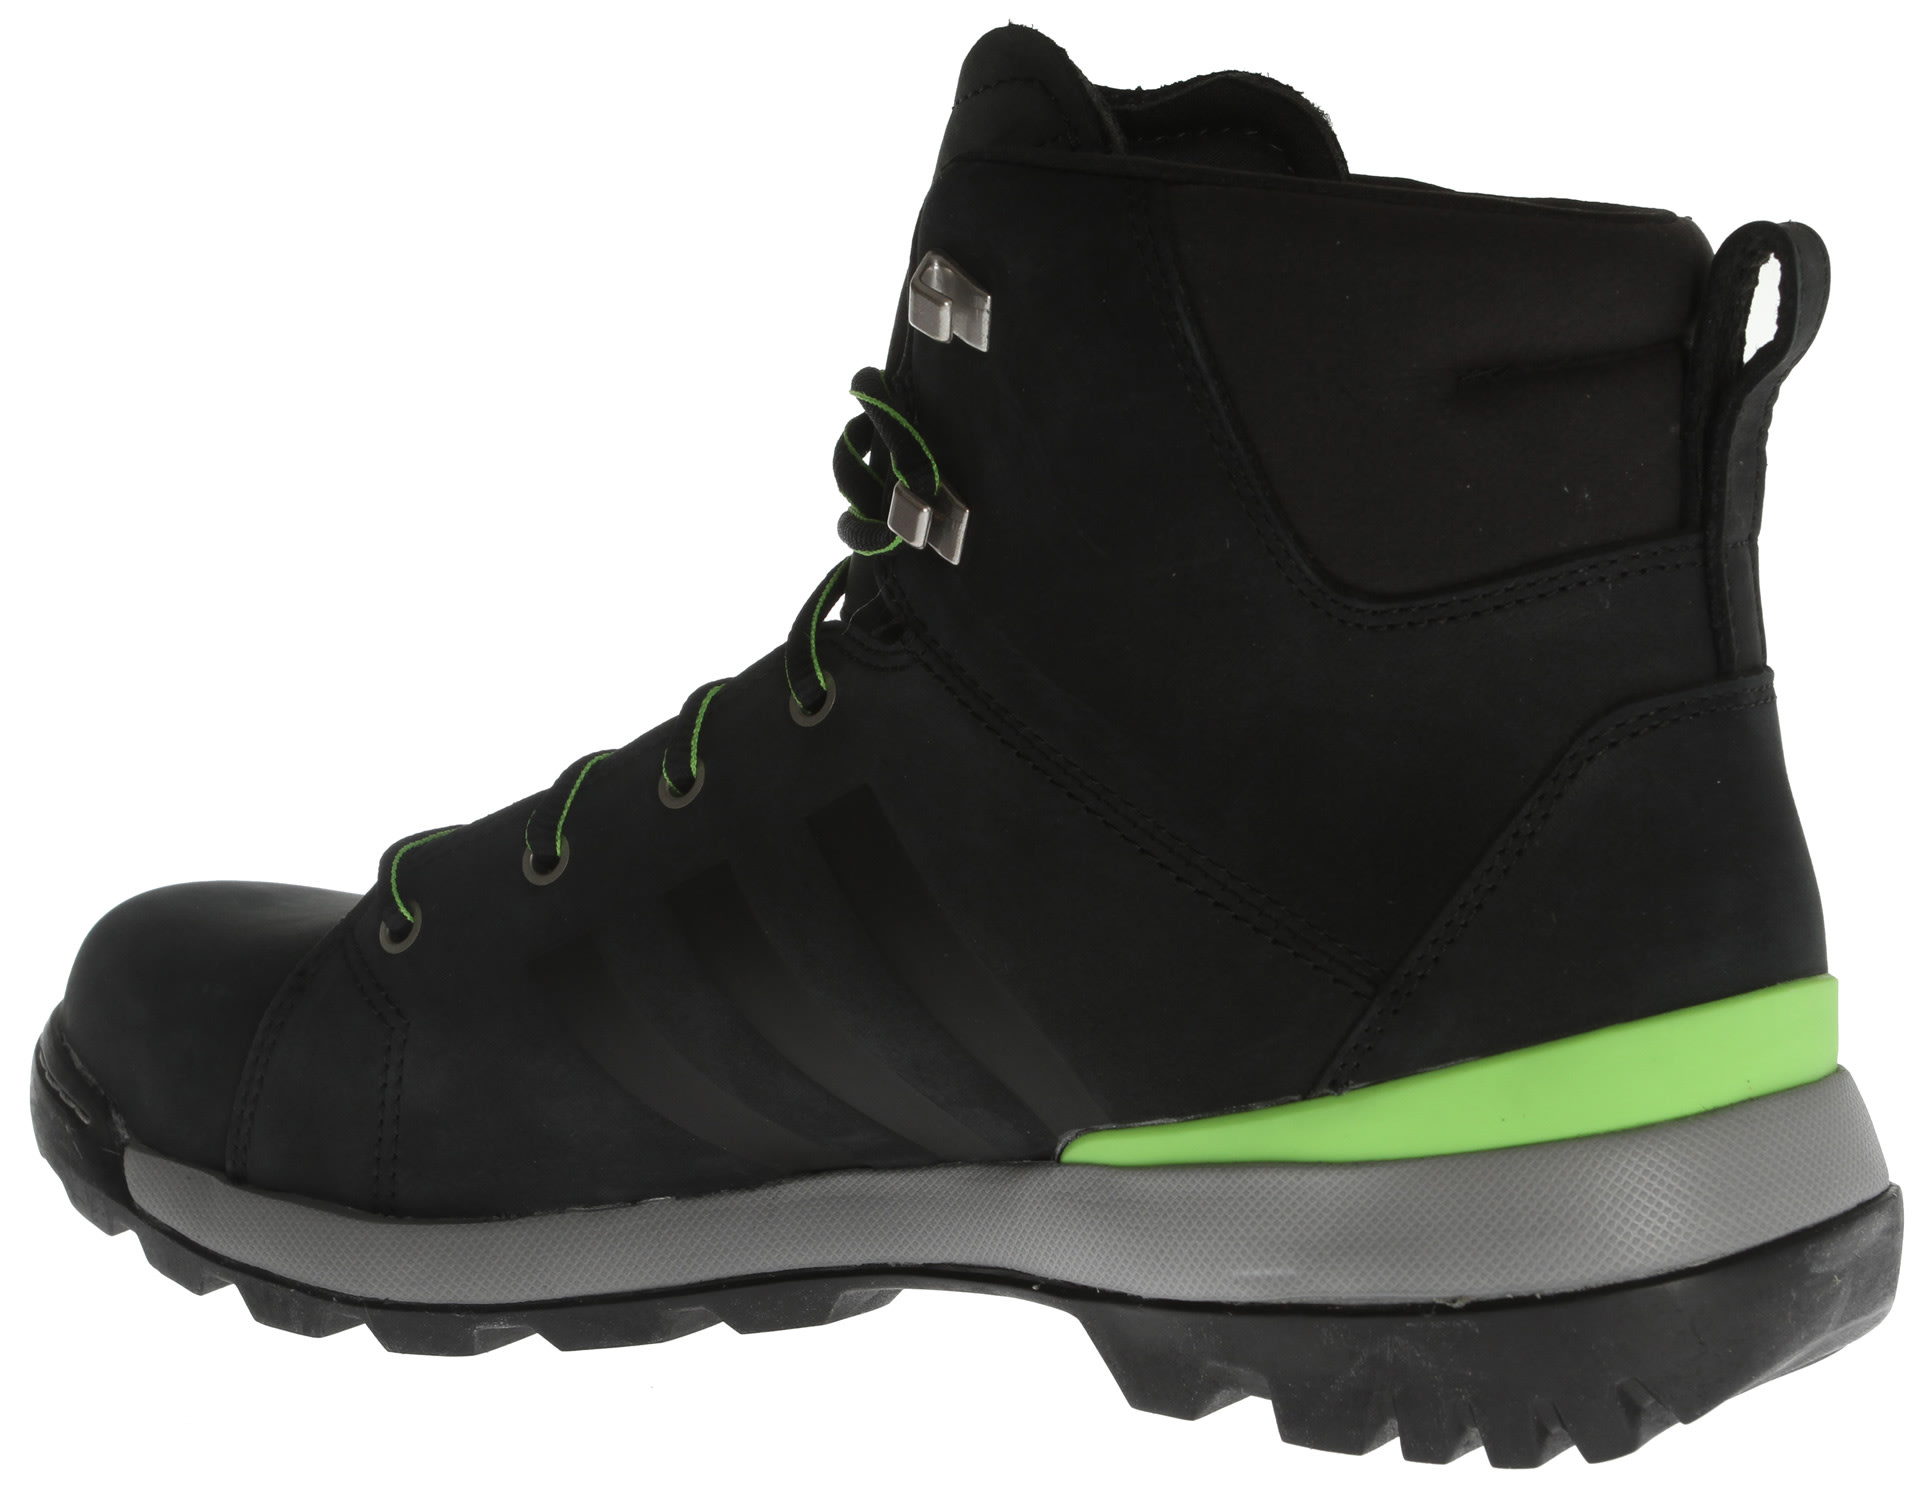 On Sale Adidas Trail Cruiser Mid Hiking Boots Up To 50 Off